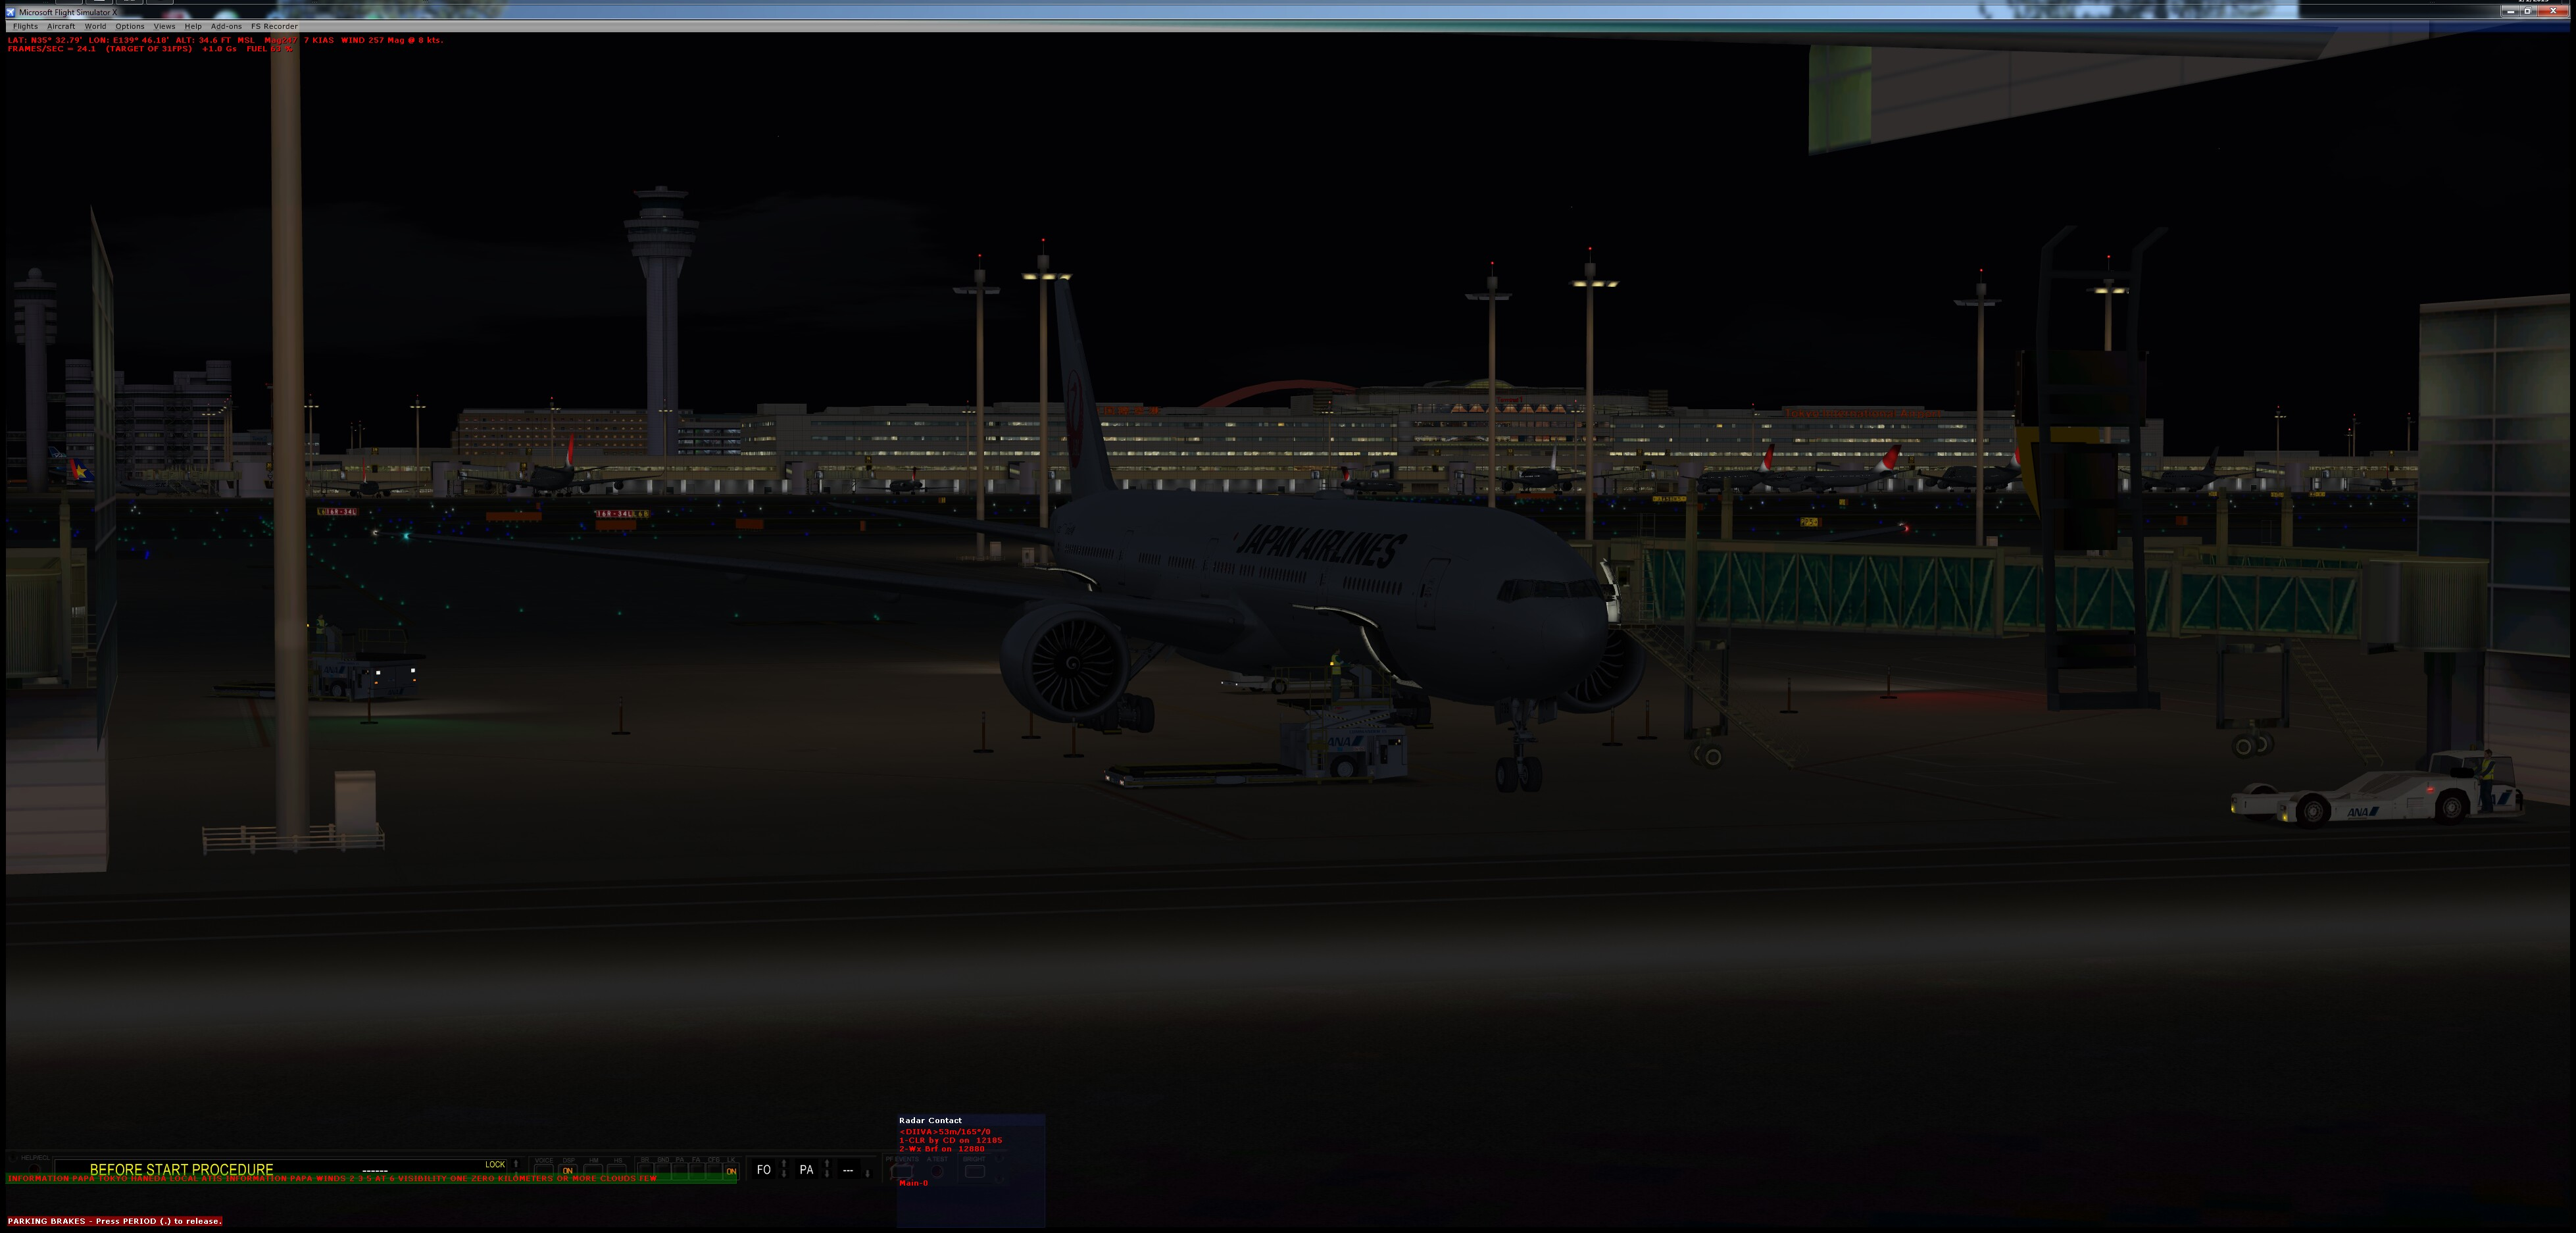 ScreenshotsRJTT-KSFO-02.jpg